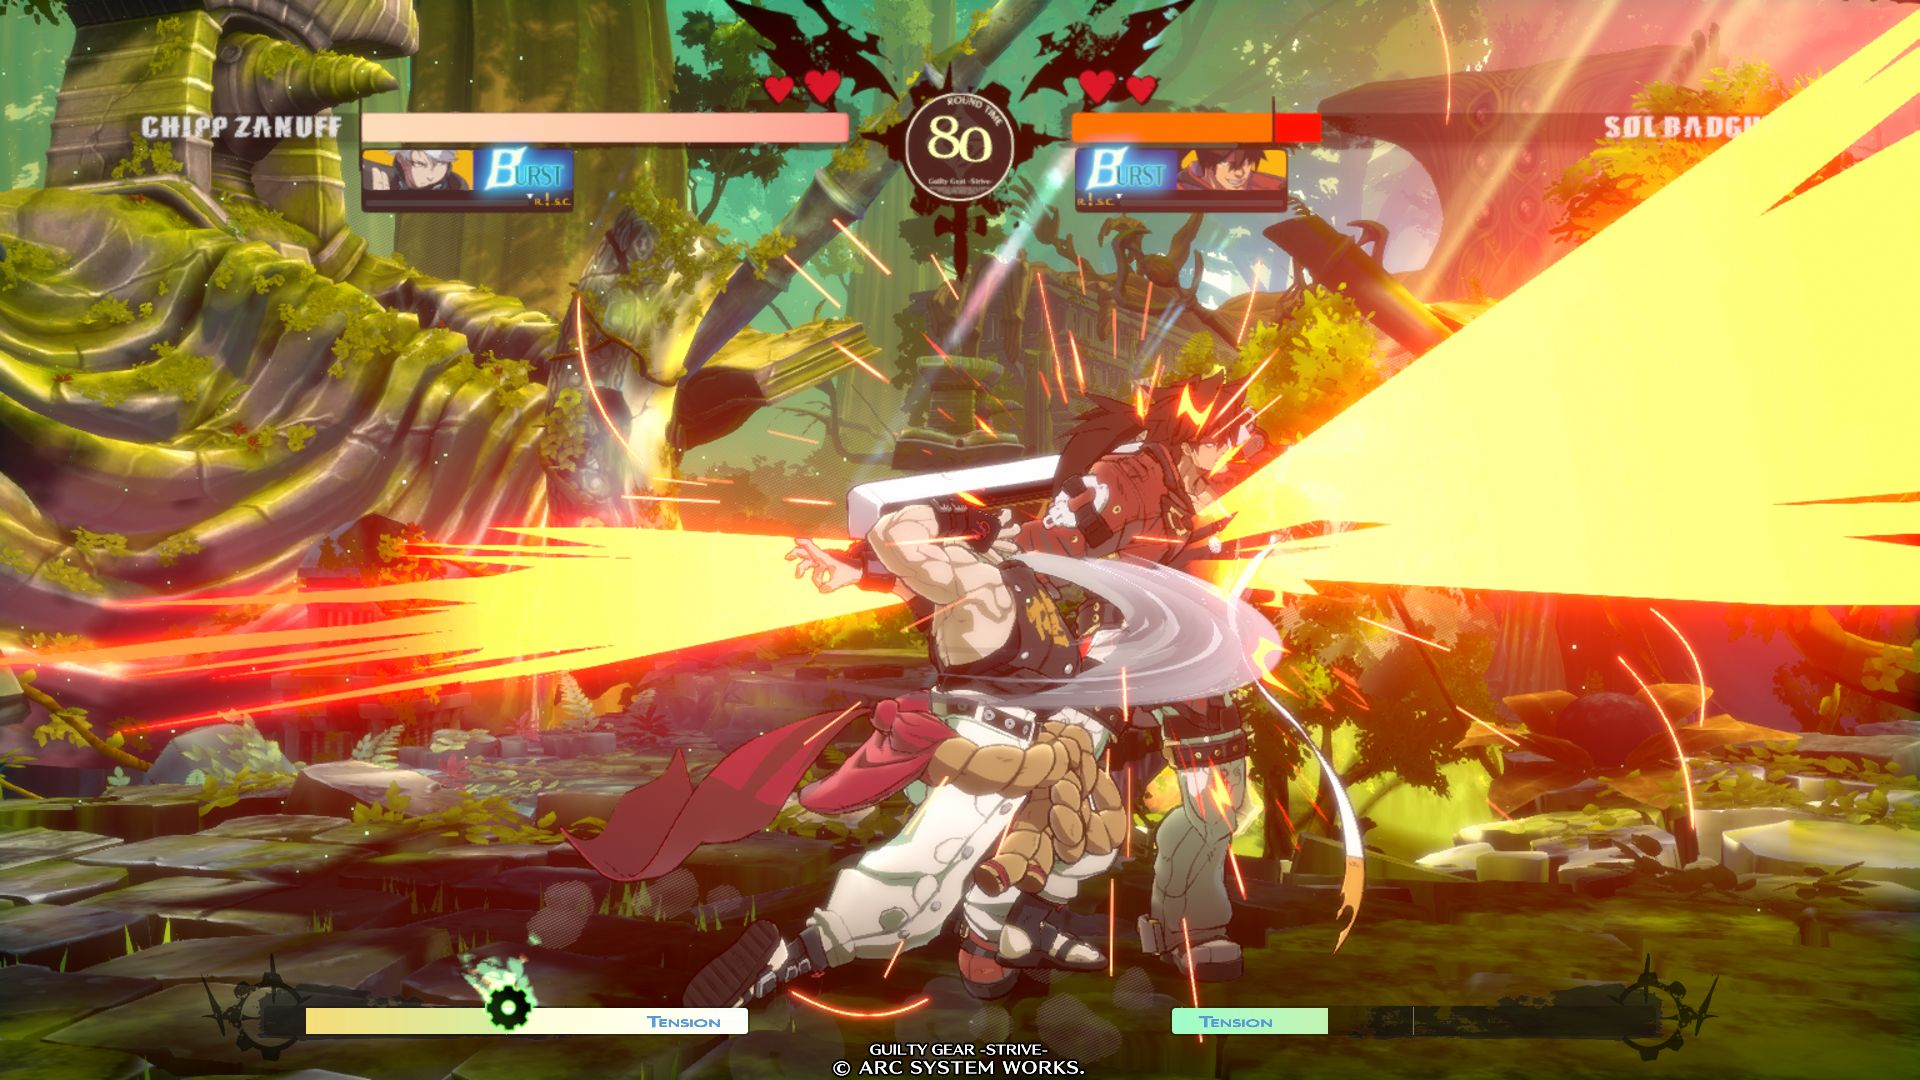 Chipp Zanuff VS Sol Badguy in GUILTY GEAR -STRIVE-